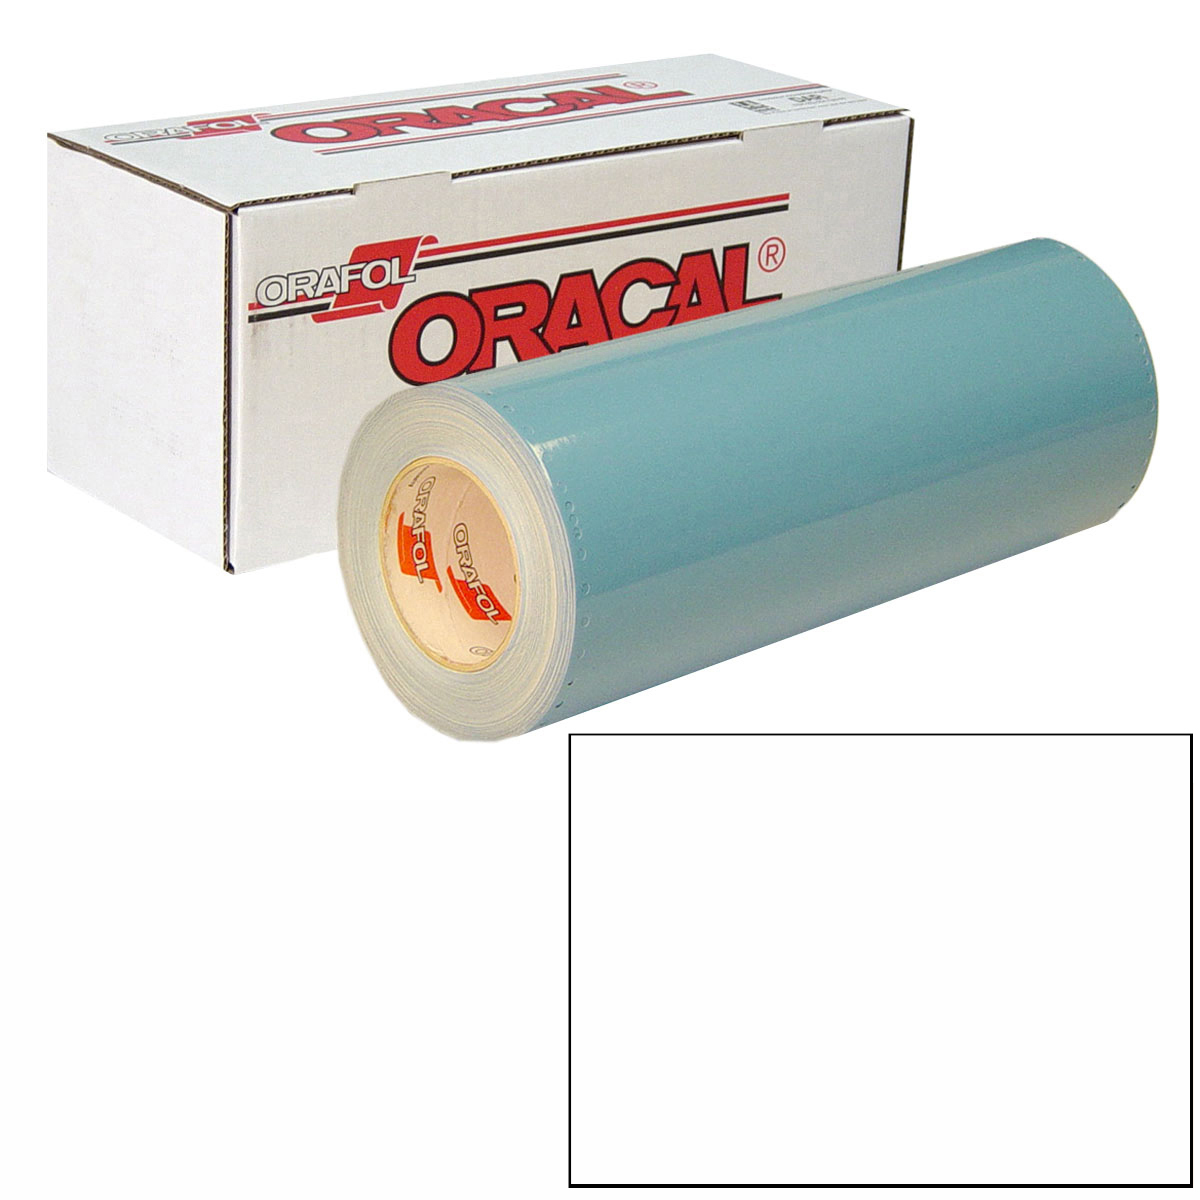 ORACAL 751 Unp 48In X 50Yd 000 Transparent